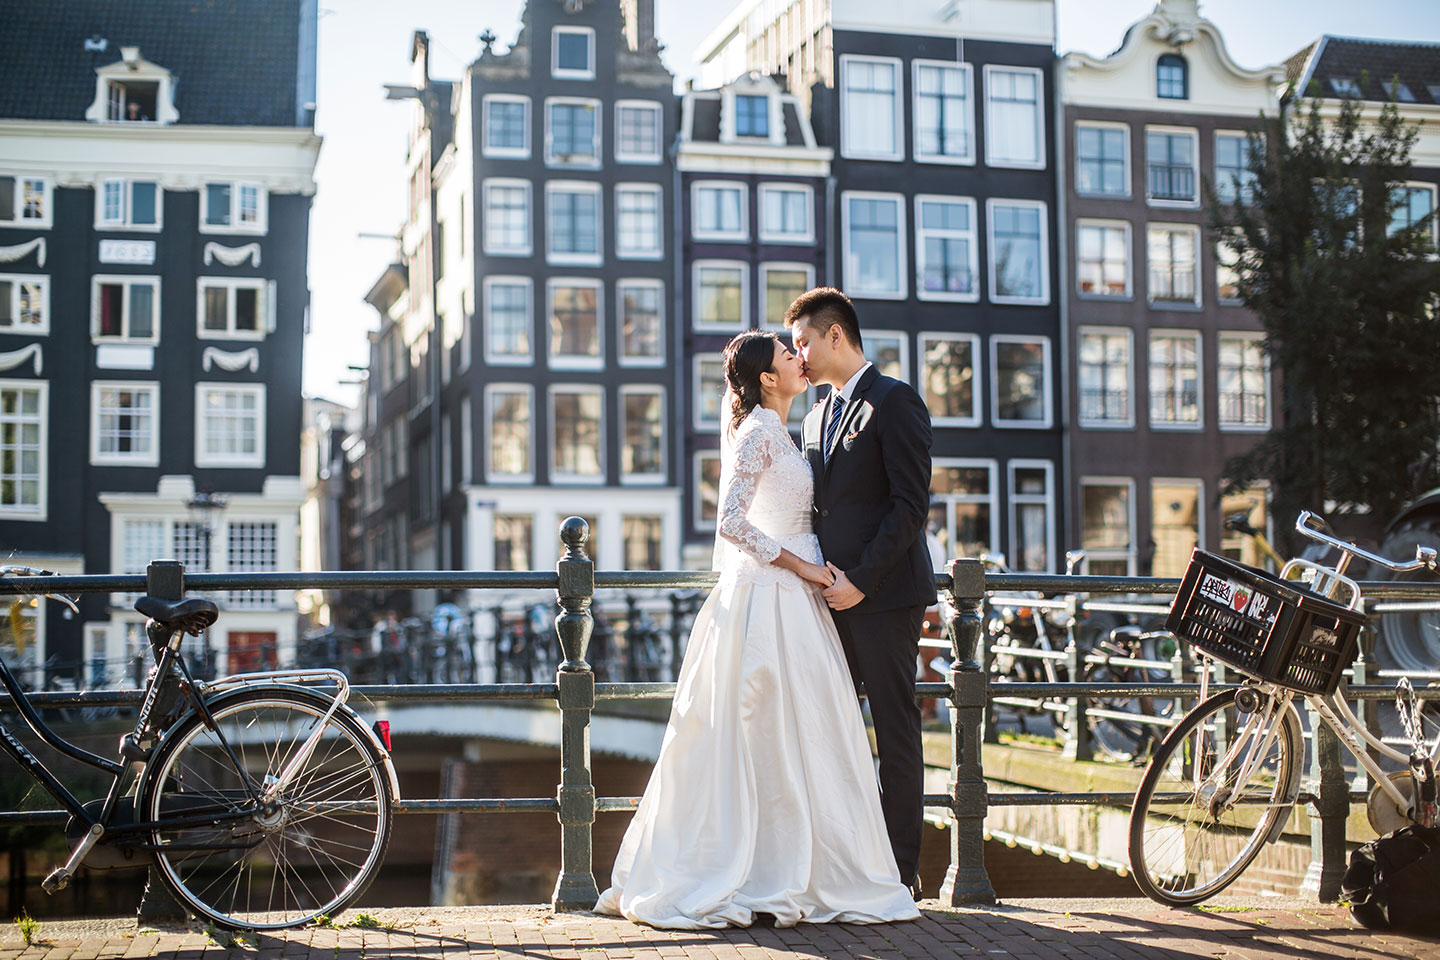 14-Amsterdam-Europe-pre-wedding